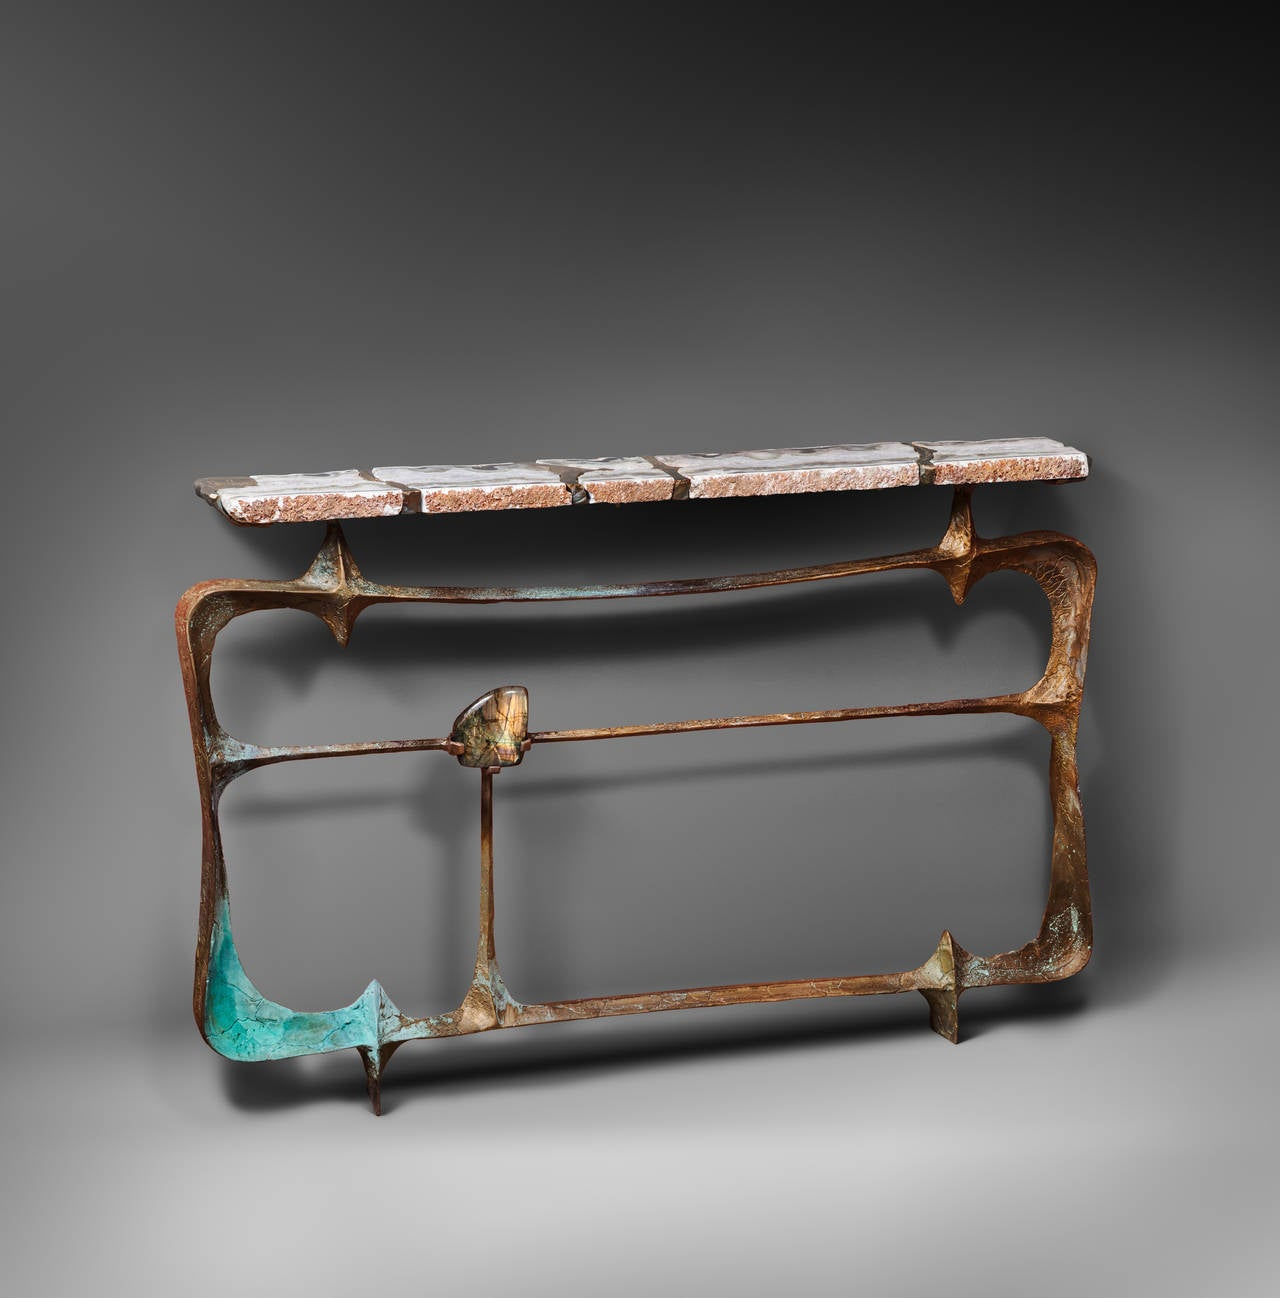 Brazier jones 2014 agate labradorite console table for sale at 1stdibs brazier jones 2014 agate labradorite console table 2 geotapseo Image collections